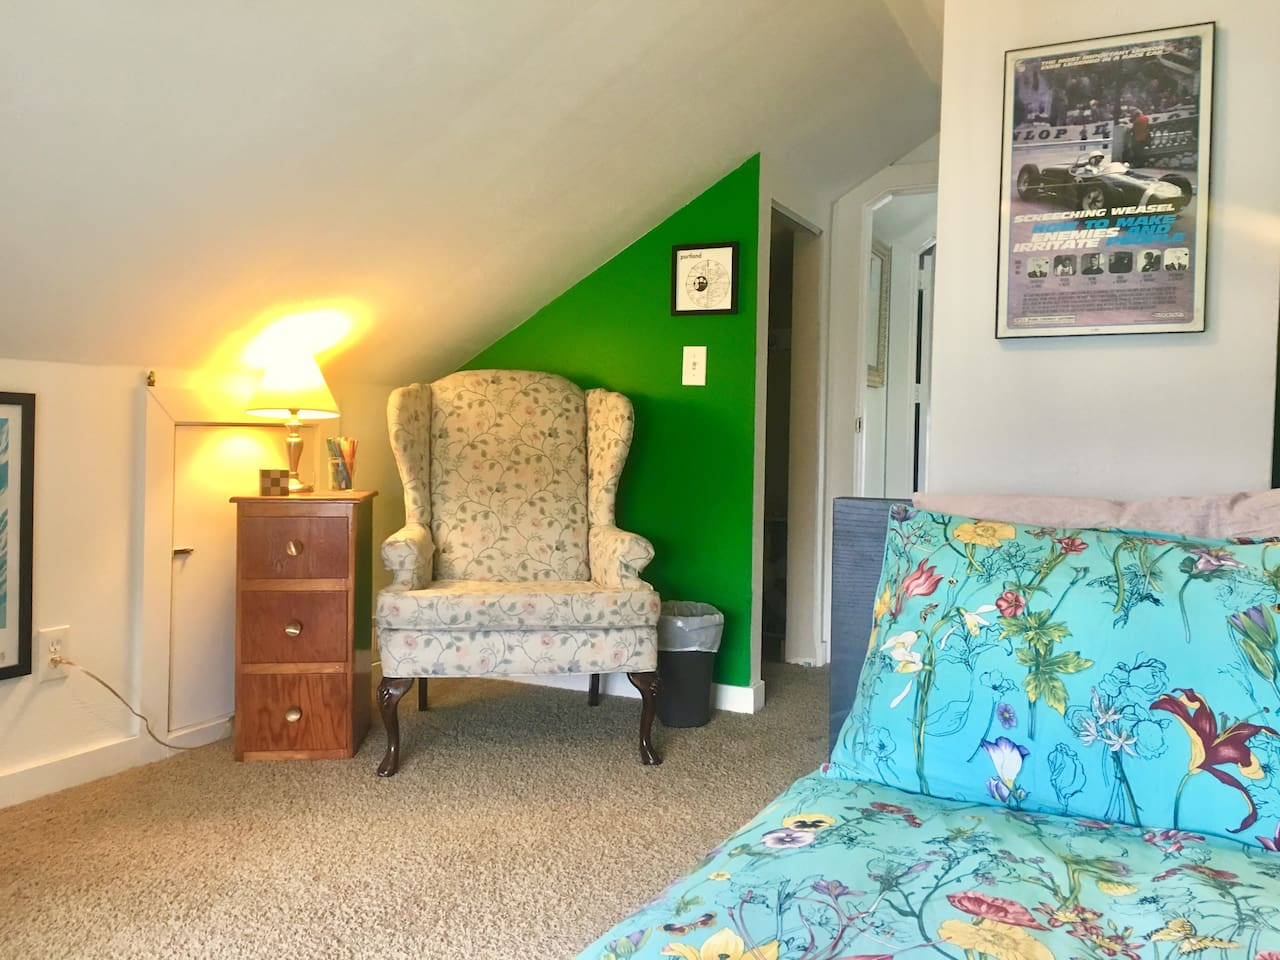 Here's the lovely green room! Let's take a look around!